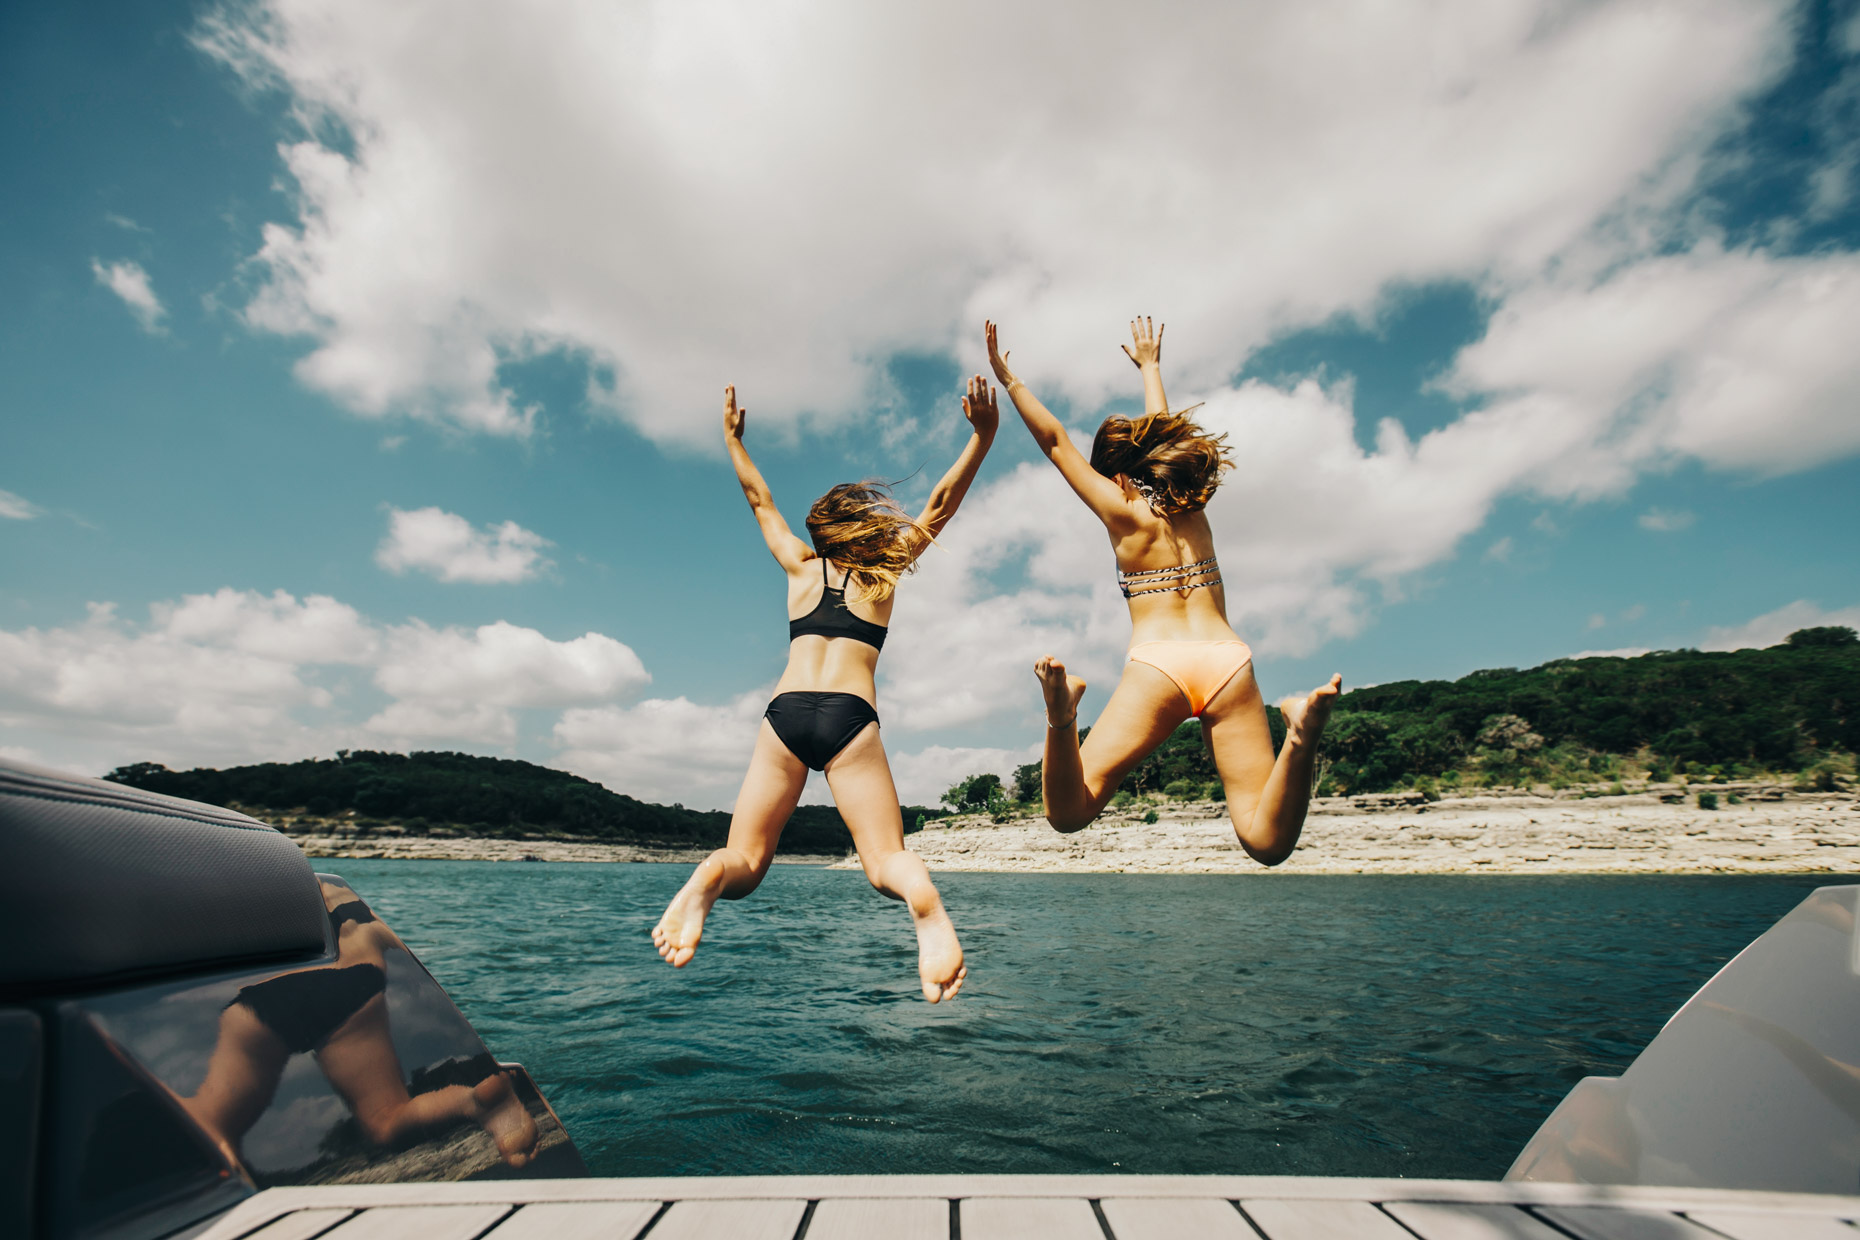 Teen-girls-jumping-off-boat-into-lake-Inti-St-Clair-is20180629_Hollows_3040